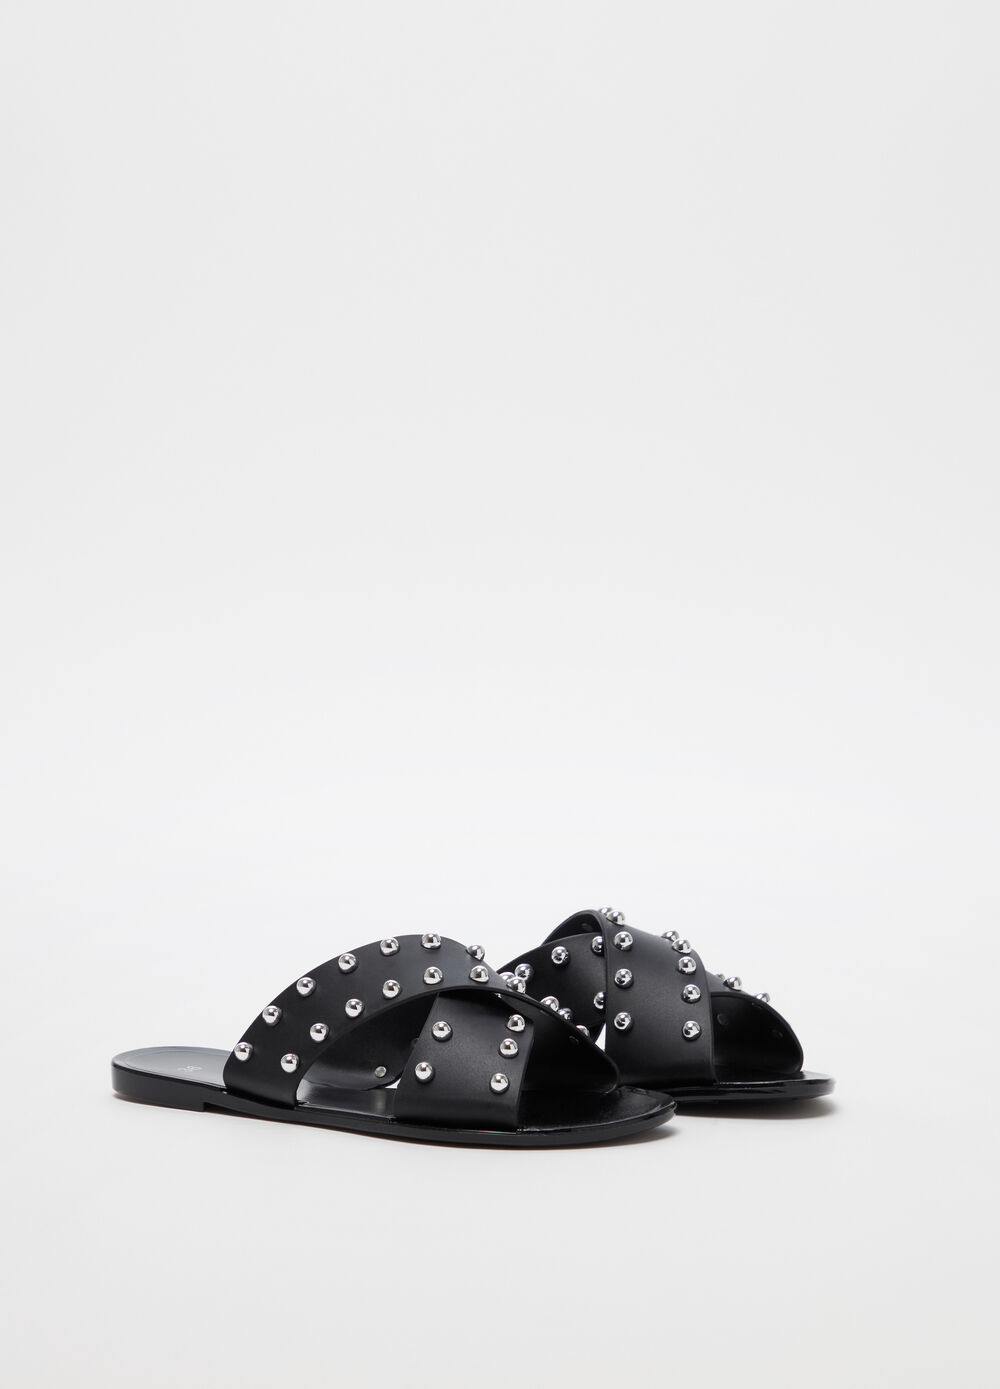 Crossover sandals with studs